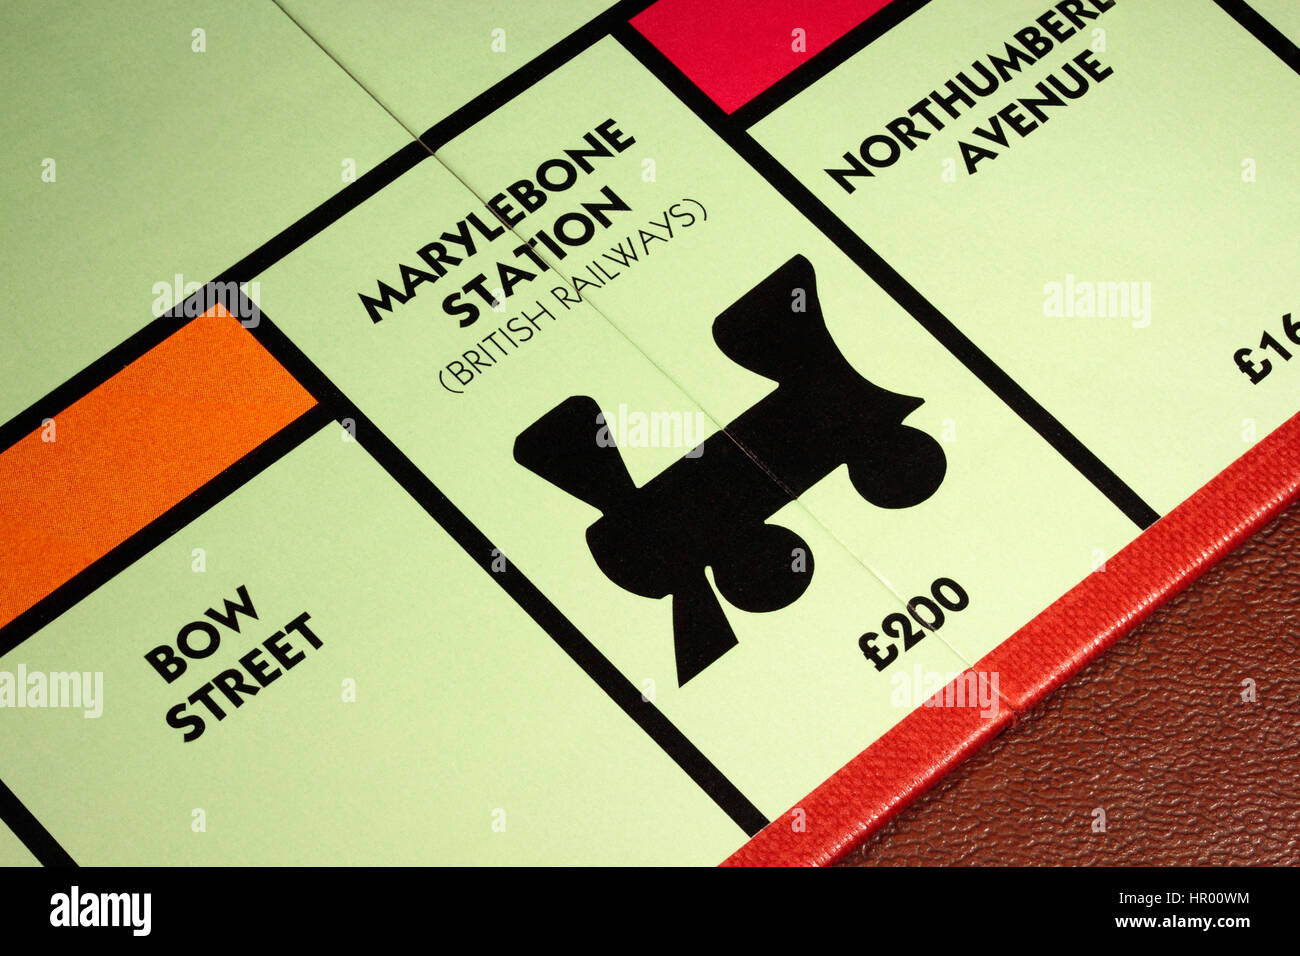 Monopoly board game Marylebone Station British Railways £200 with Bow Street to the left and Northumberland - Stock Image